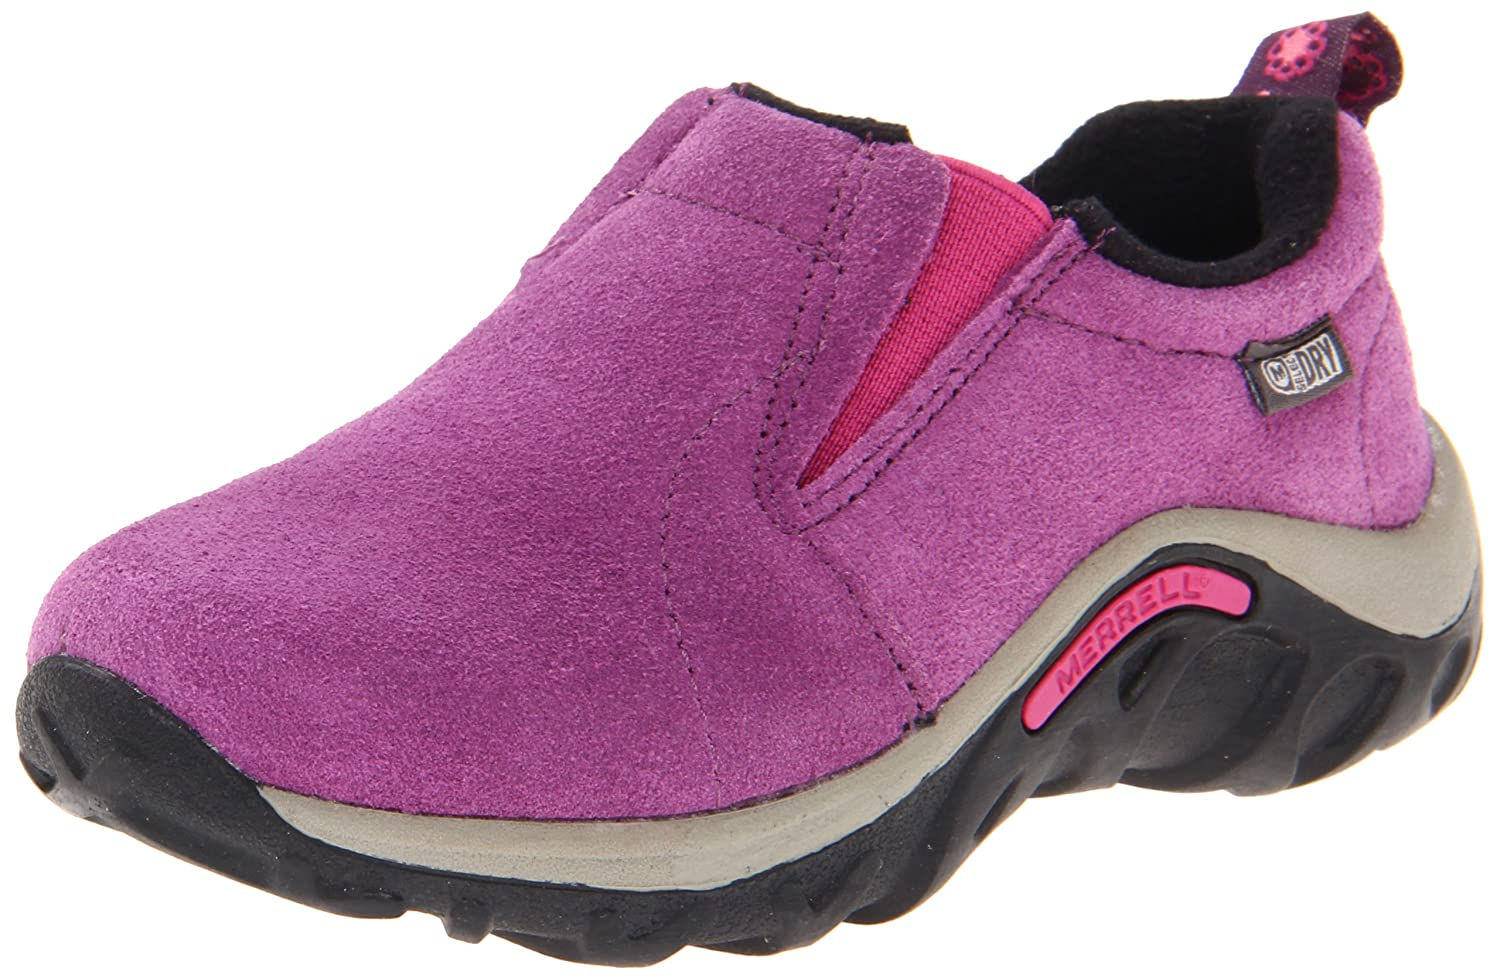 Merrell Jungle Moc Frosty Waterproof Slip-On Shoe (Toddler/Little Kid/Big Kid) Merrell Kids Footwear